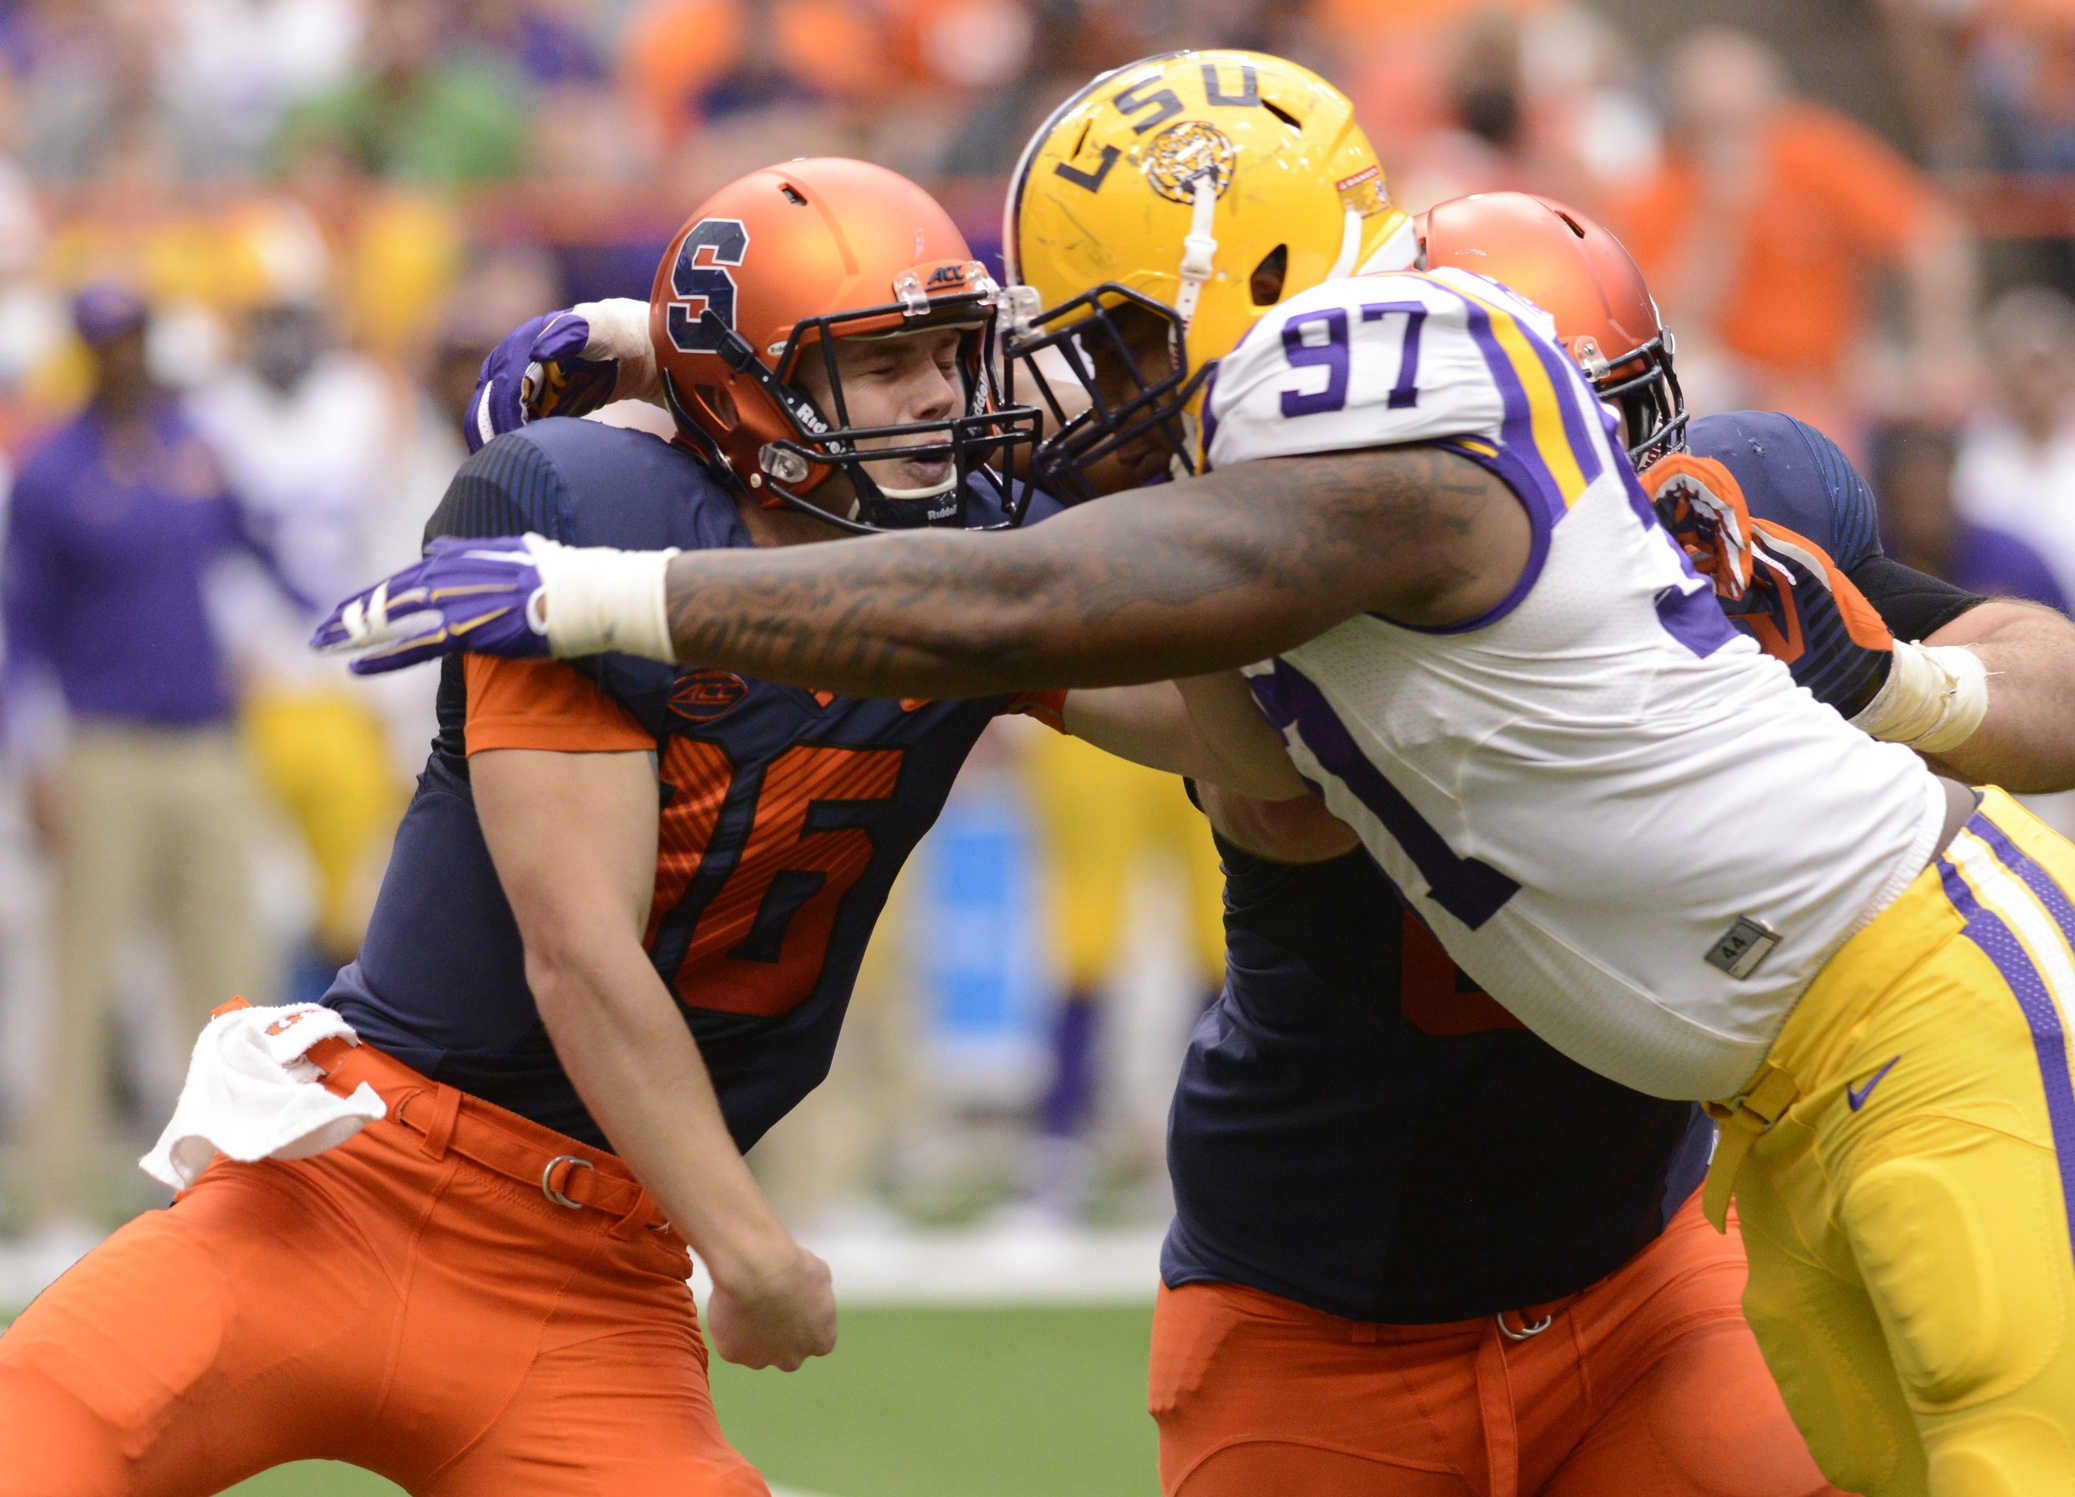 LSU defense has played well but must continue to improve ...